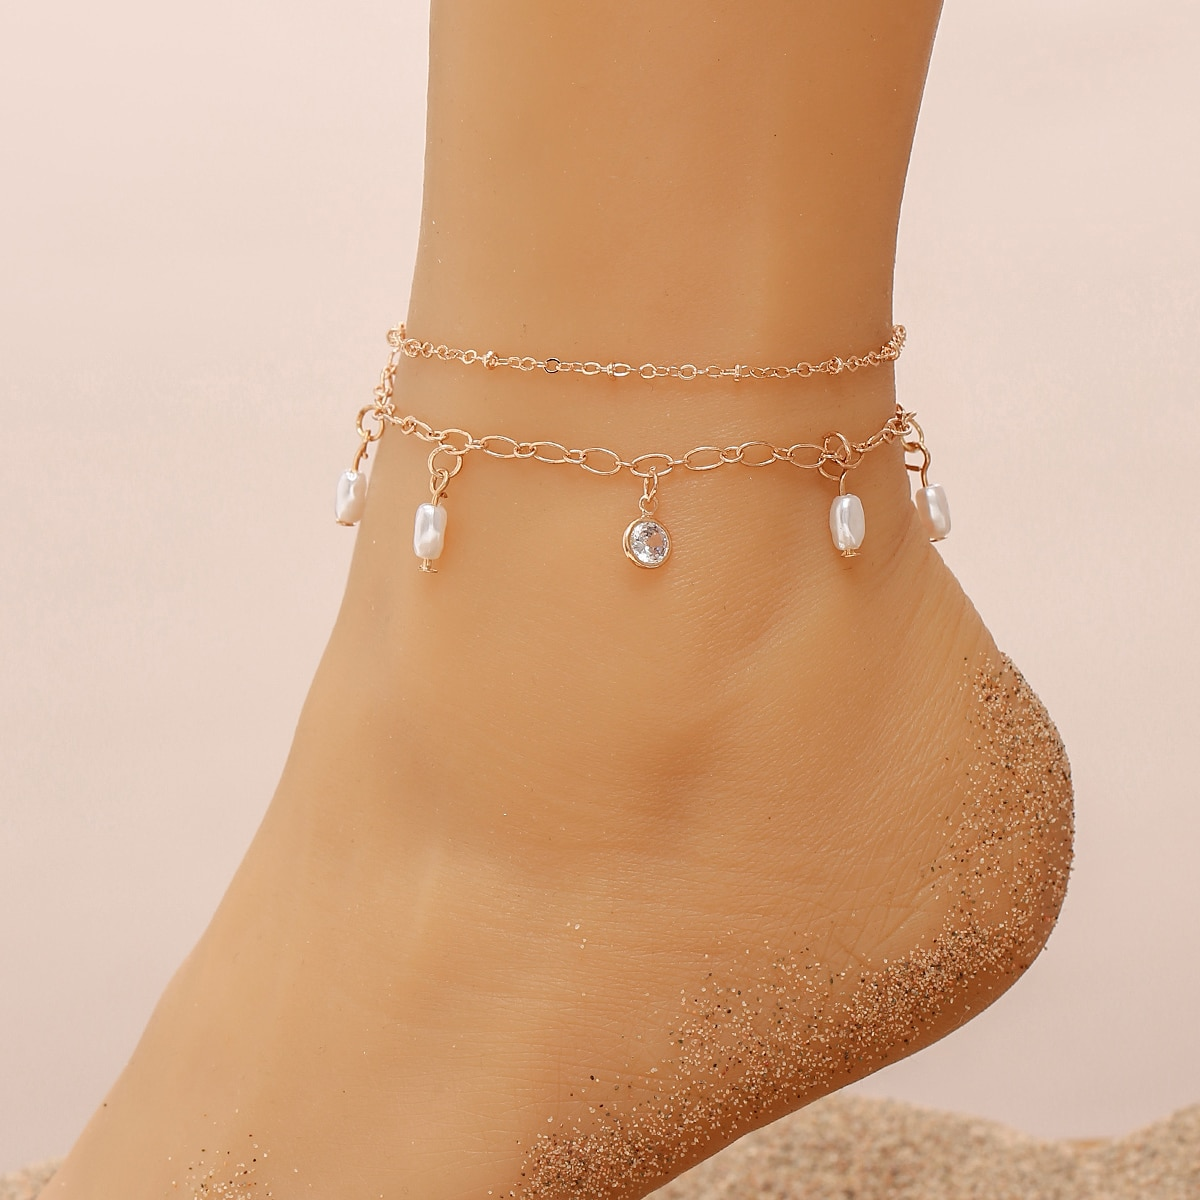 Faux Pearl & Zircon Charm Anklet, SHEIN  - buy with discount